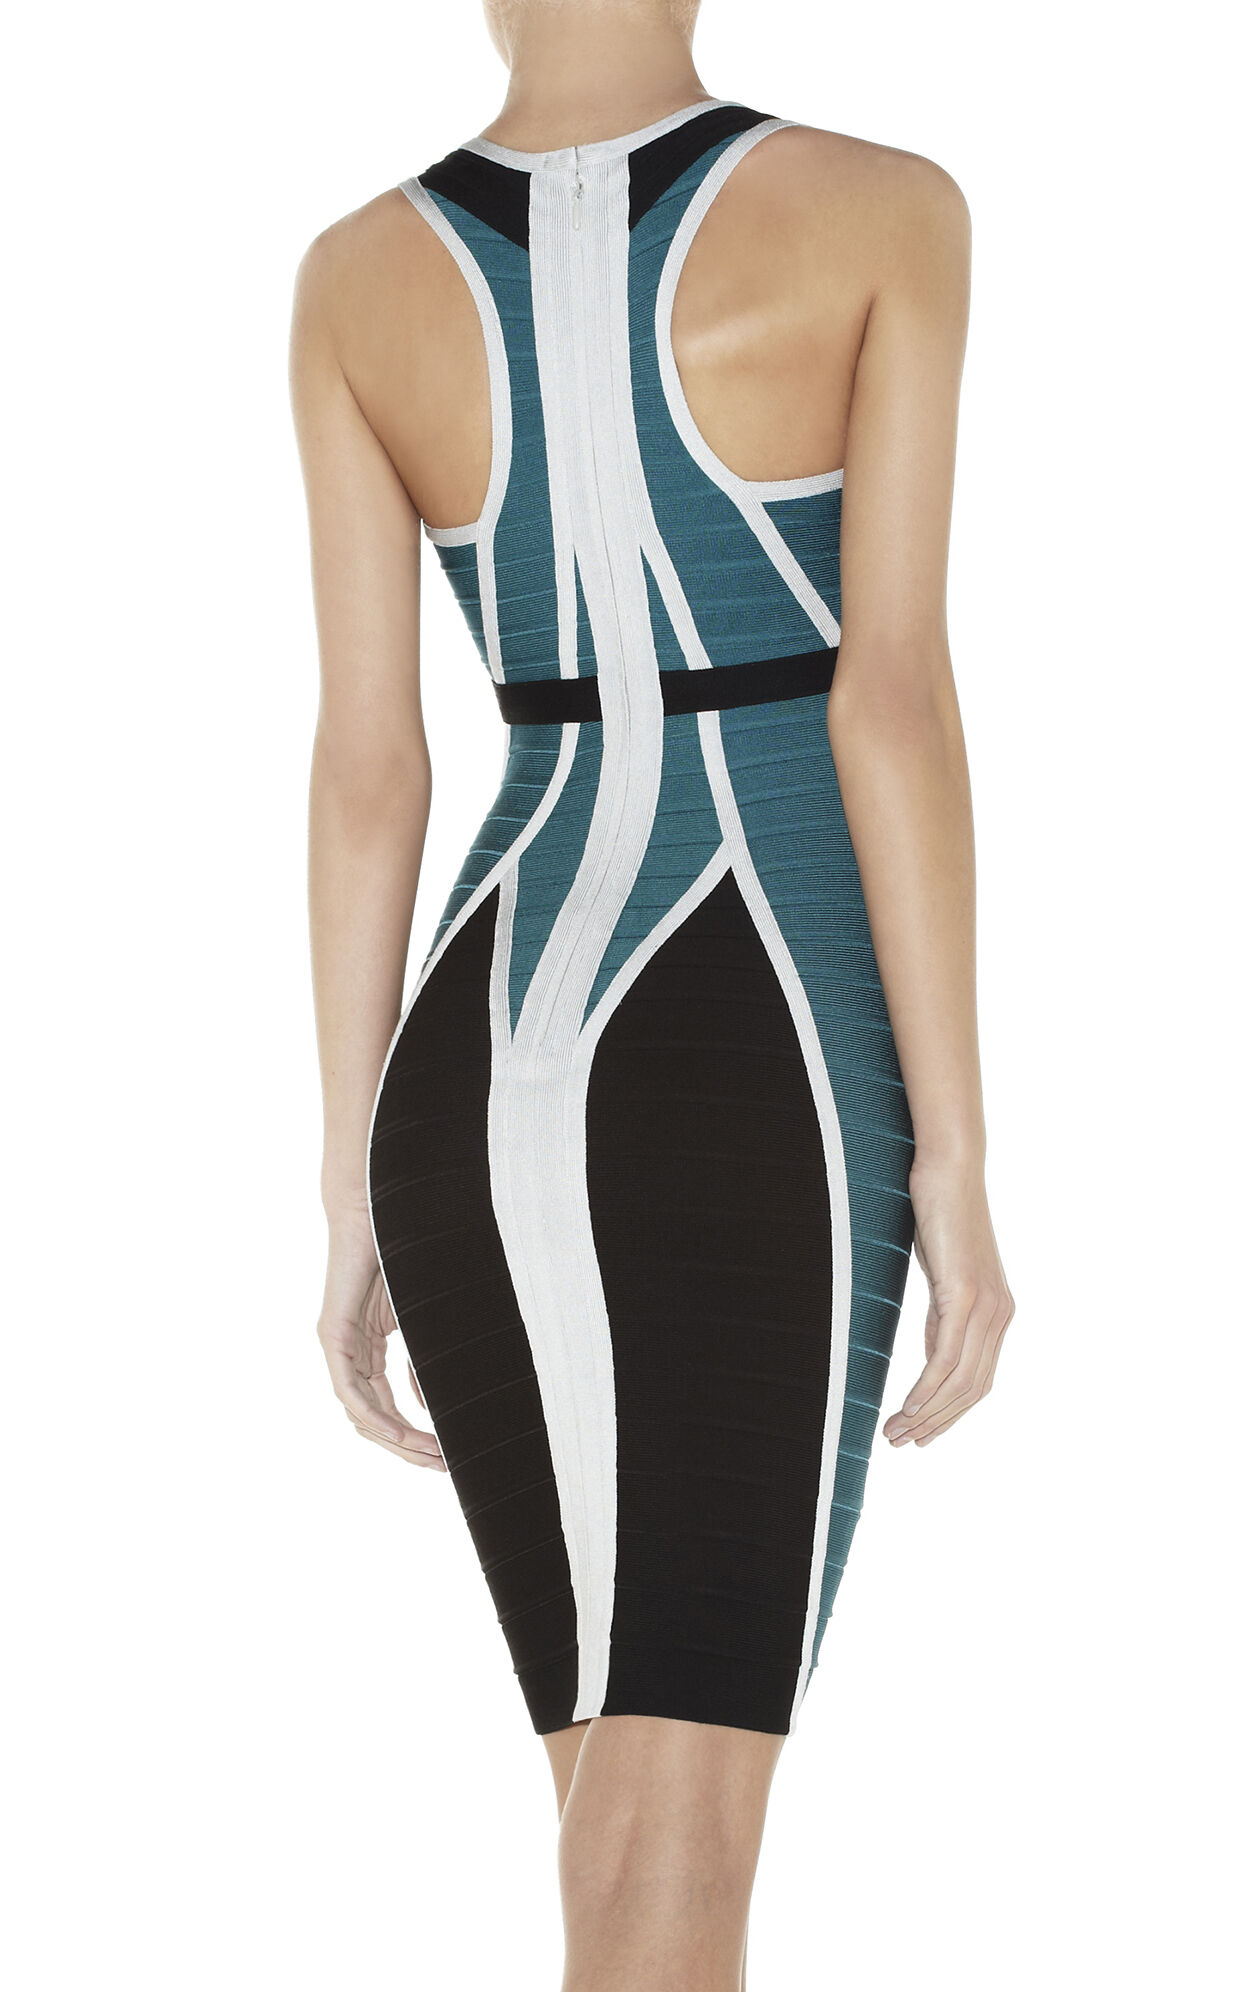 EYVETTE COLORBLOCKED BANDAGE DRESS